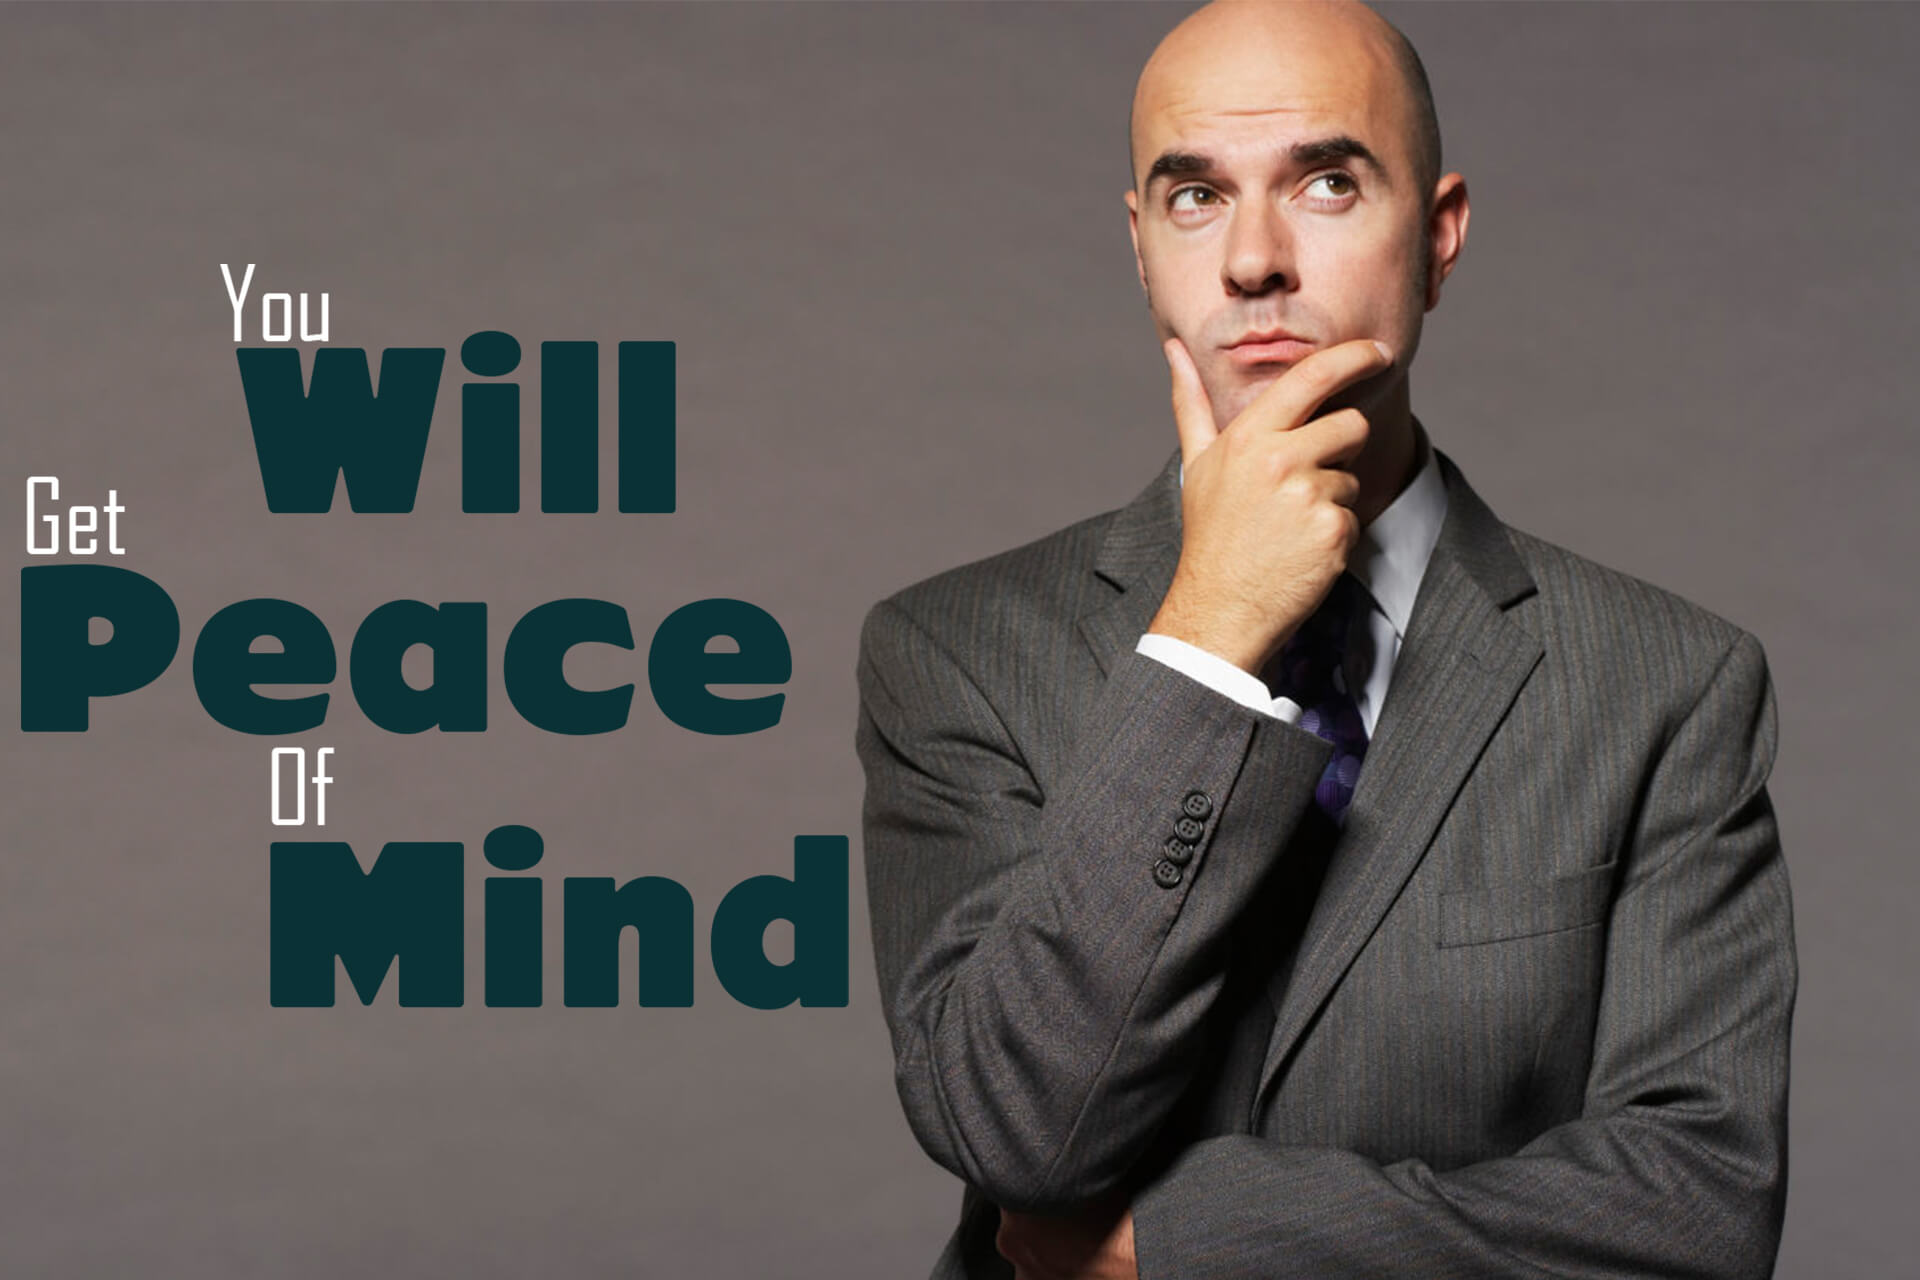 Outsourcing will provides you peace of mind